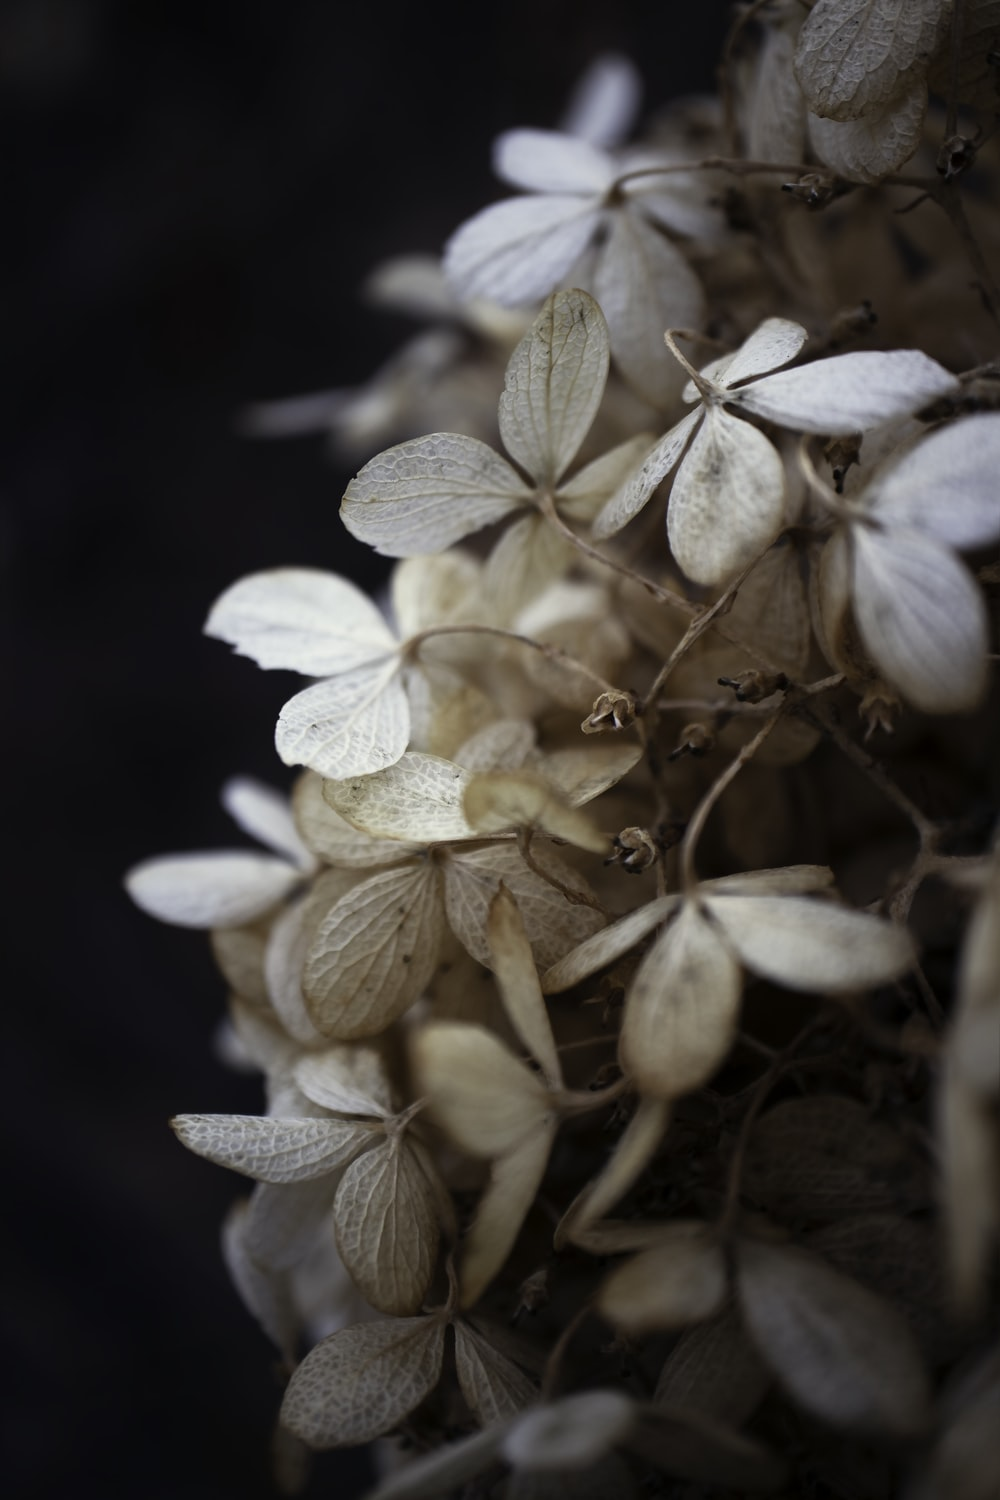 white and brown flower in close up photography